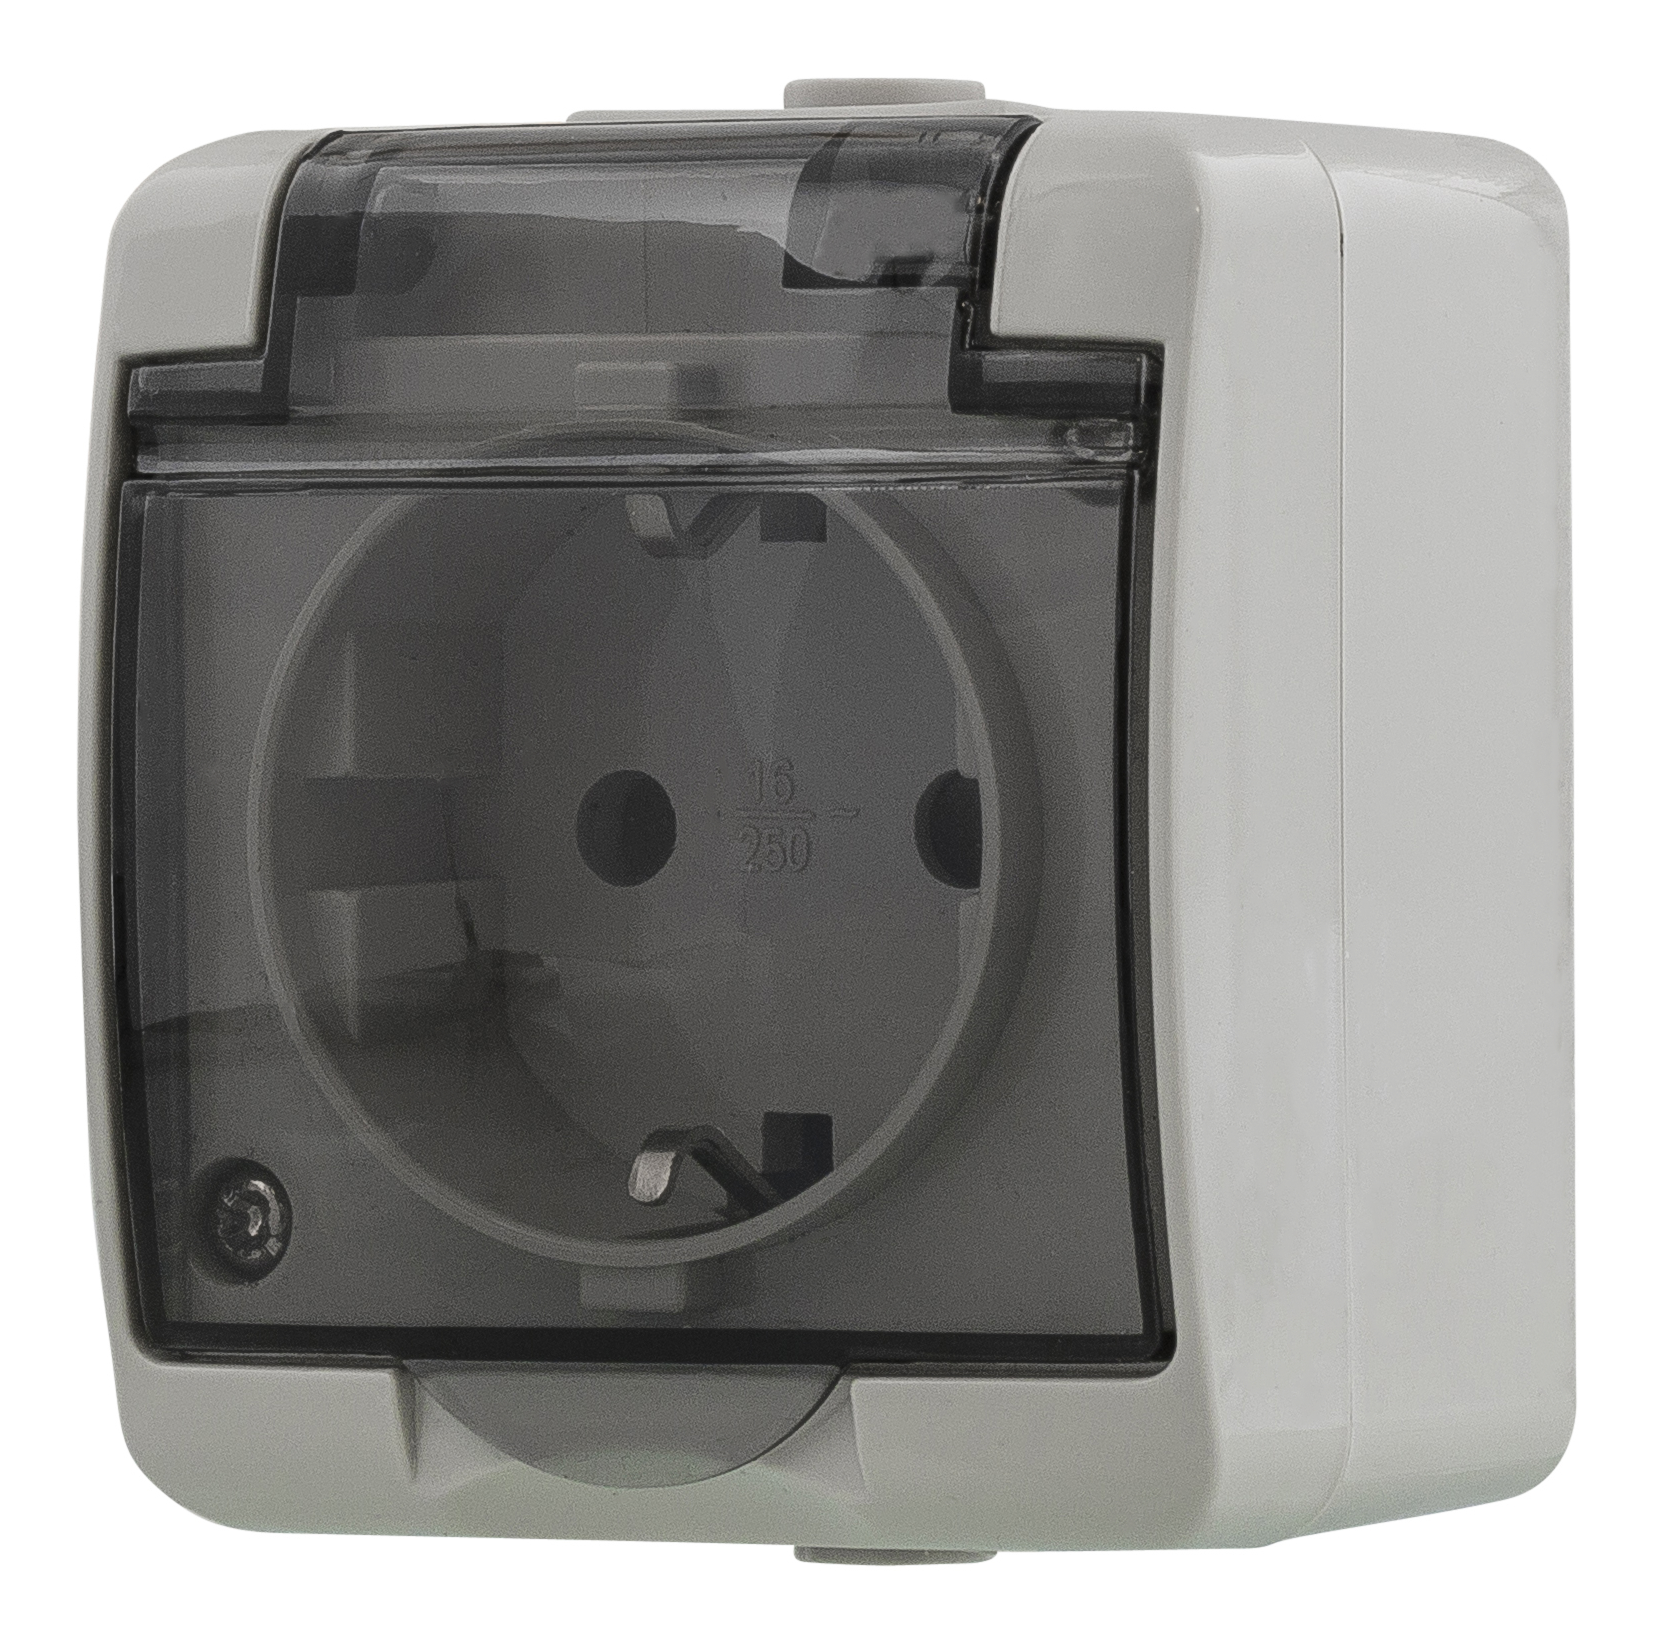 Epzi 1-way outlet with hinged lid for surface mounting, IP54, gray H2-C51GM (Kan sendes i brev)